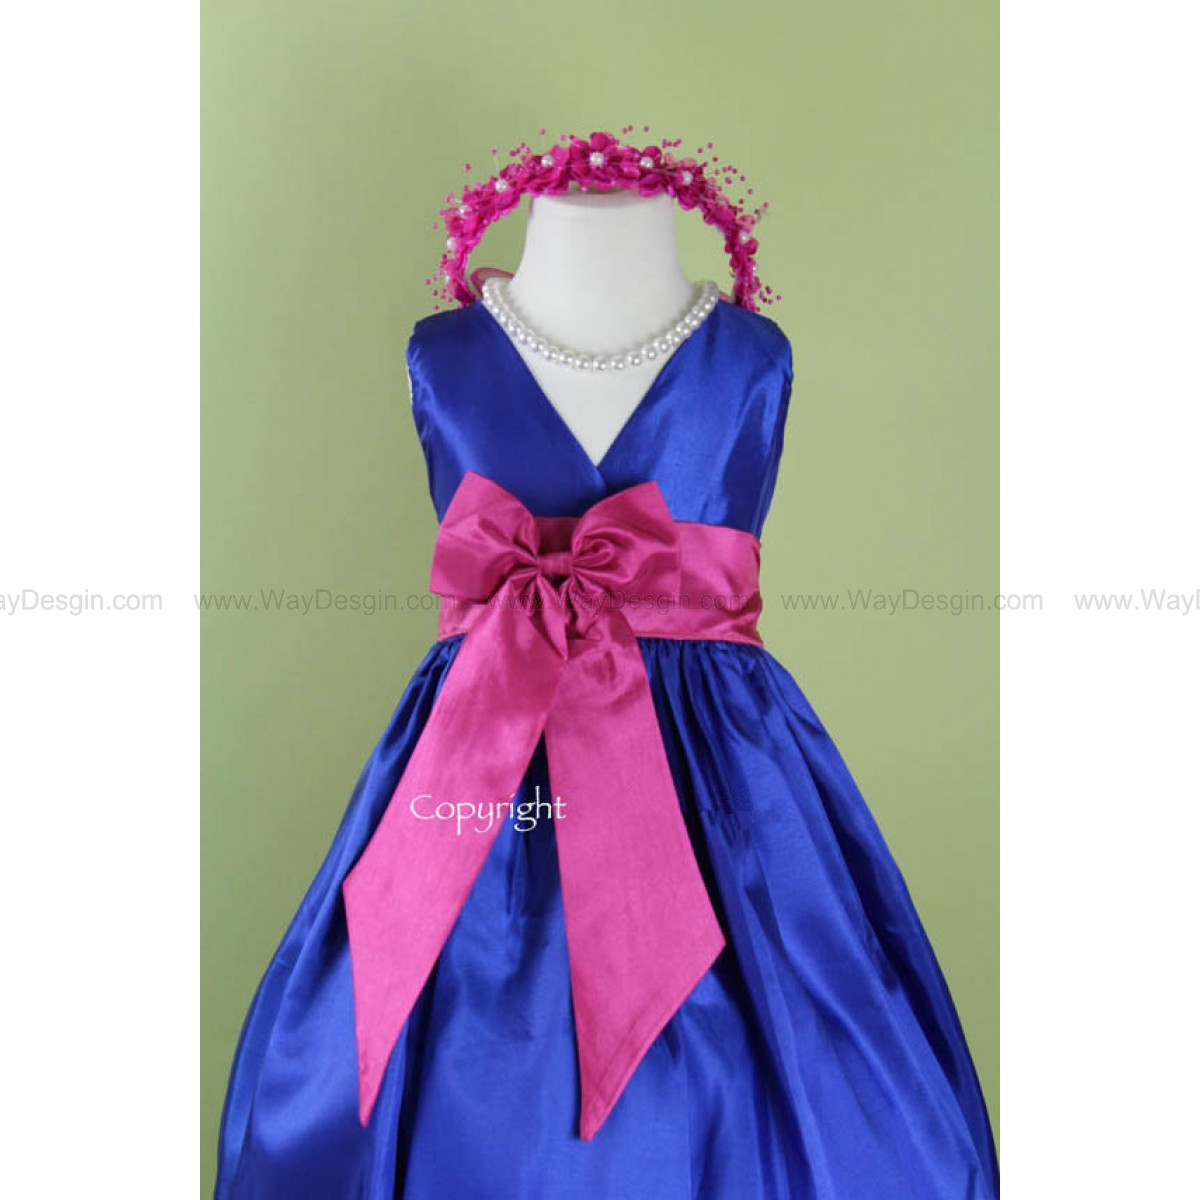 Flower girl dress blue royal v dress with fuchsia bow sash flower girl dress blue royal v dress with fuchsia bow sash easter junior bridesmaid wedding from izmirmasajfo